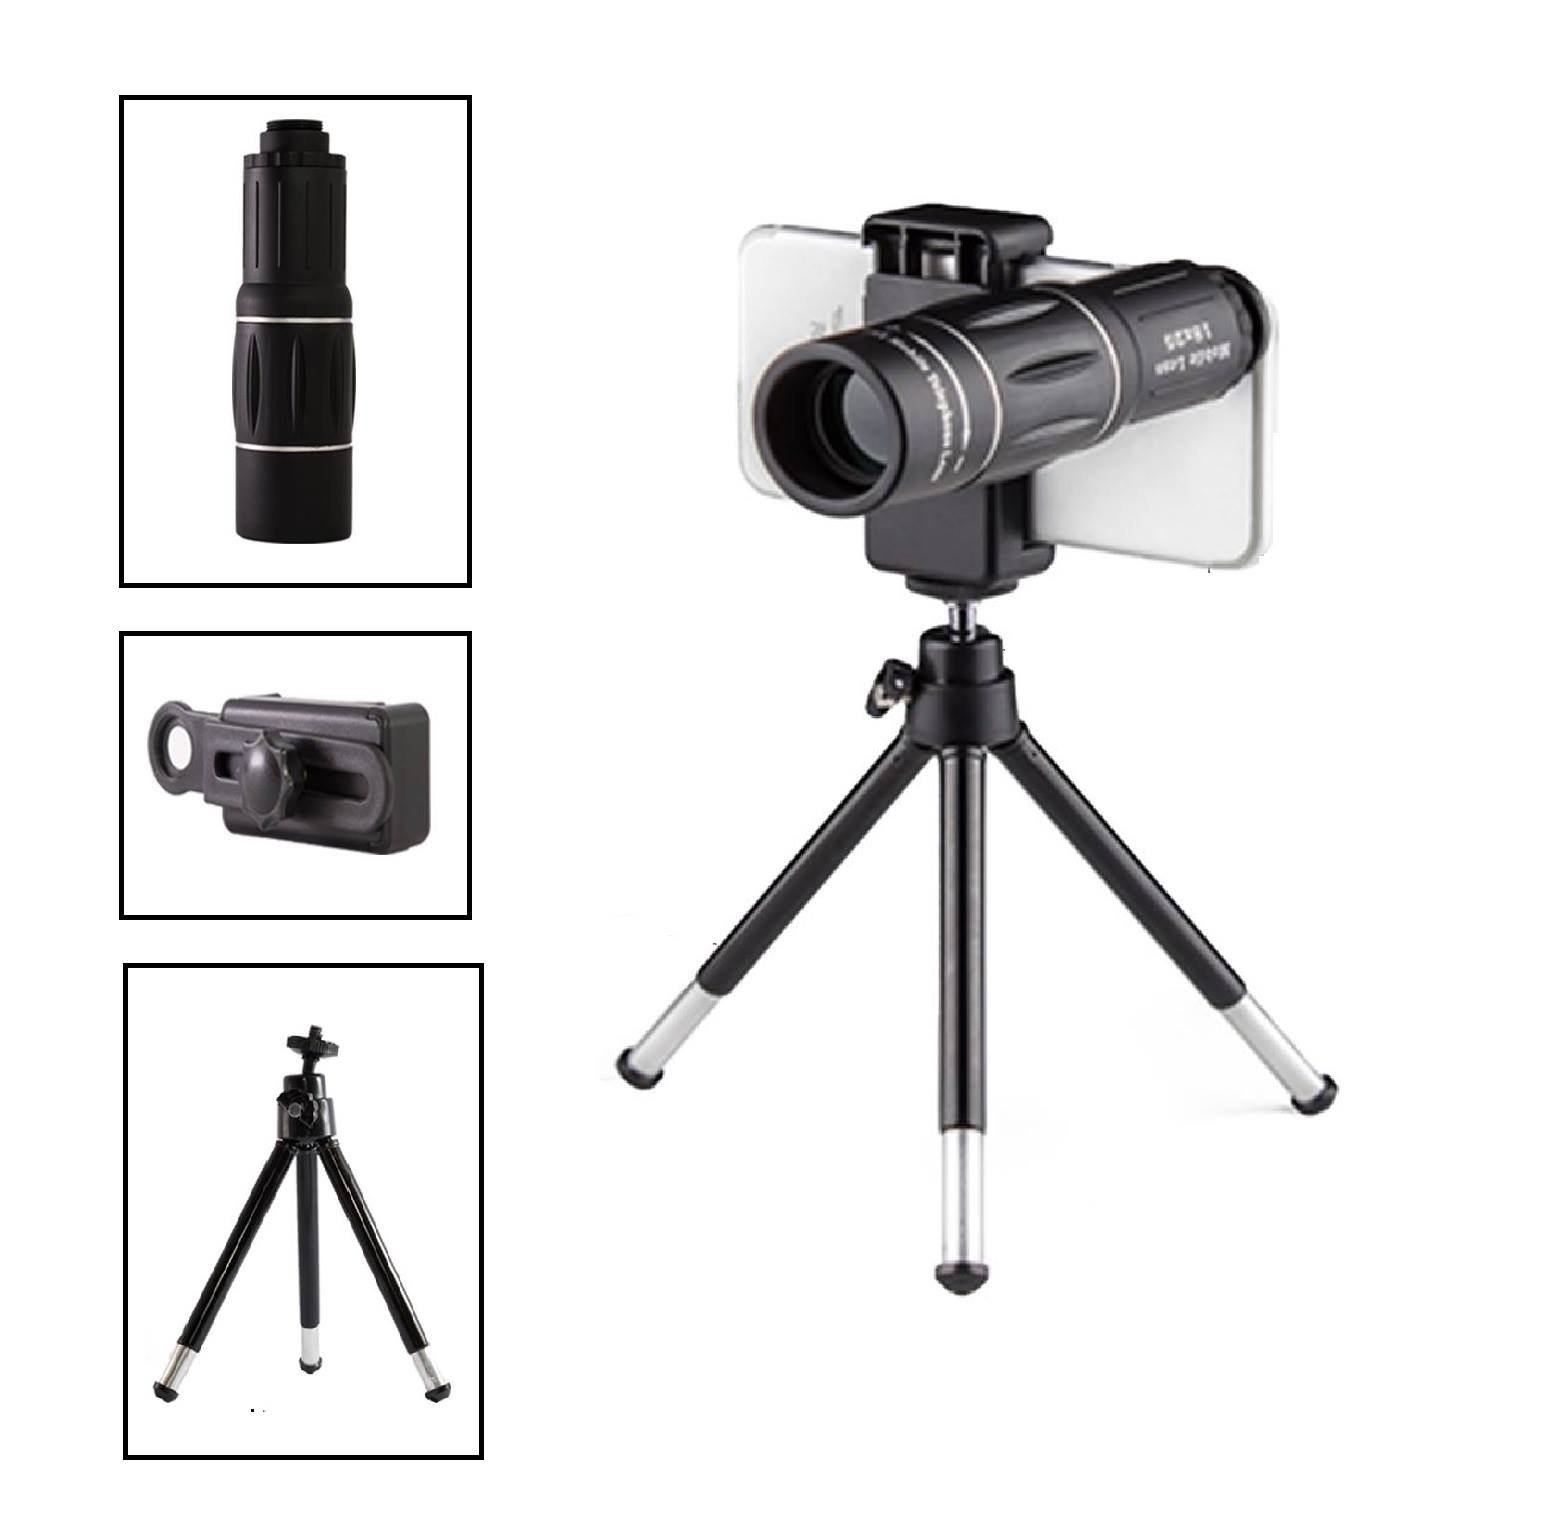 18X Smartphone Camera Lens Kit | Perfect for Capturing Distance Objects | Includes Mini Tripod, Universal Telephoto Lens Clip-On | Compatible with IOS & Android Smartphones